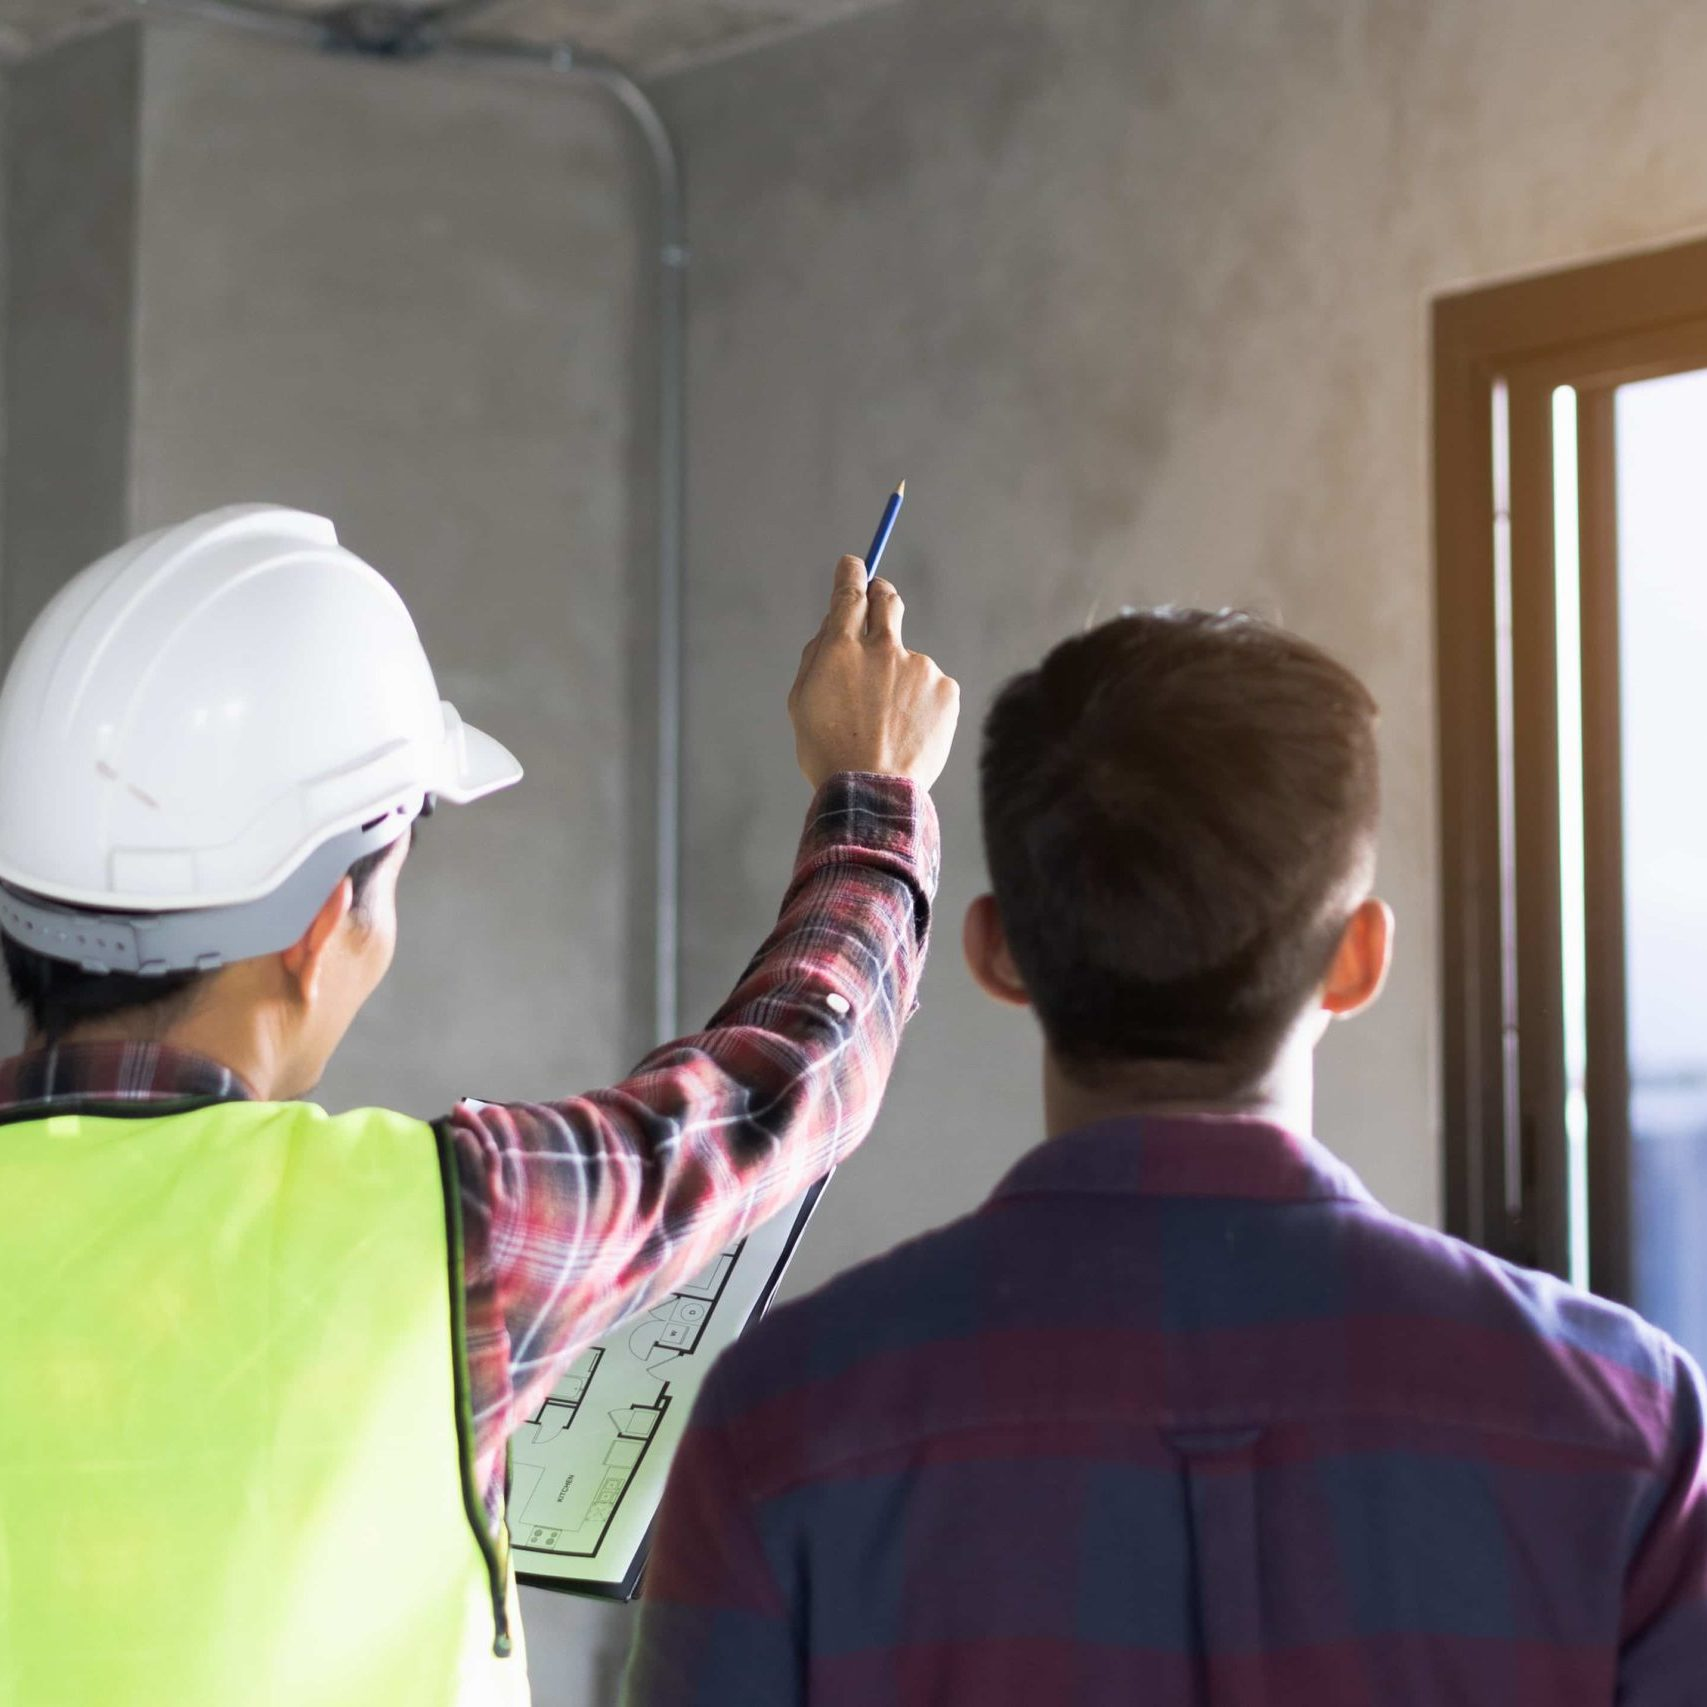 Client and Contractor discussing plan to renovation house.